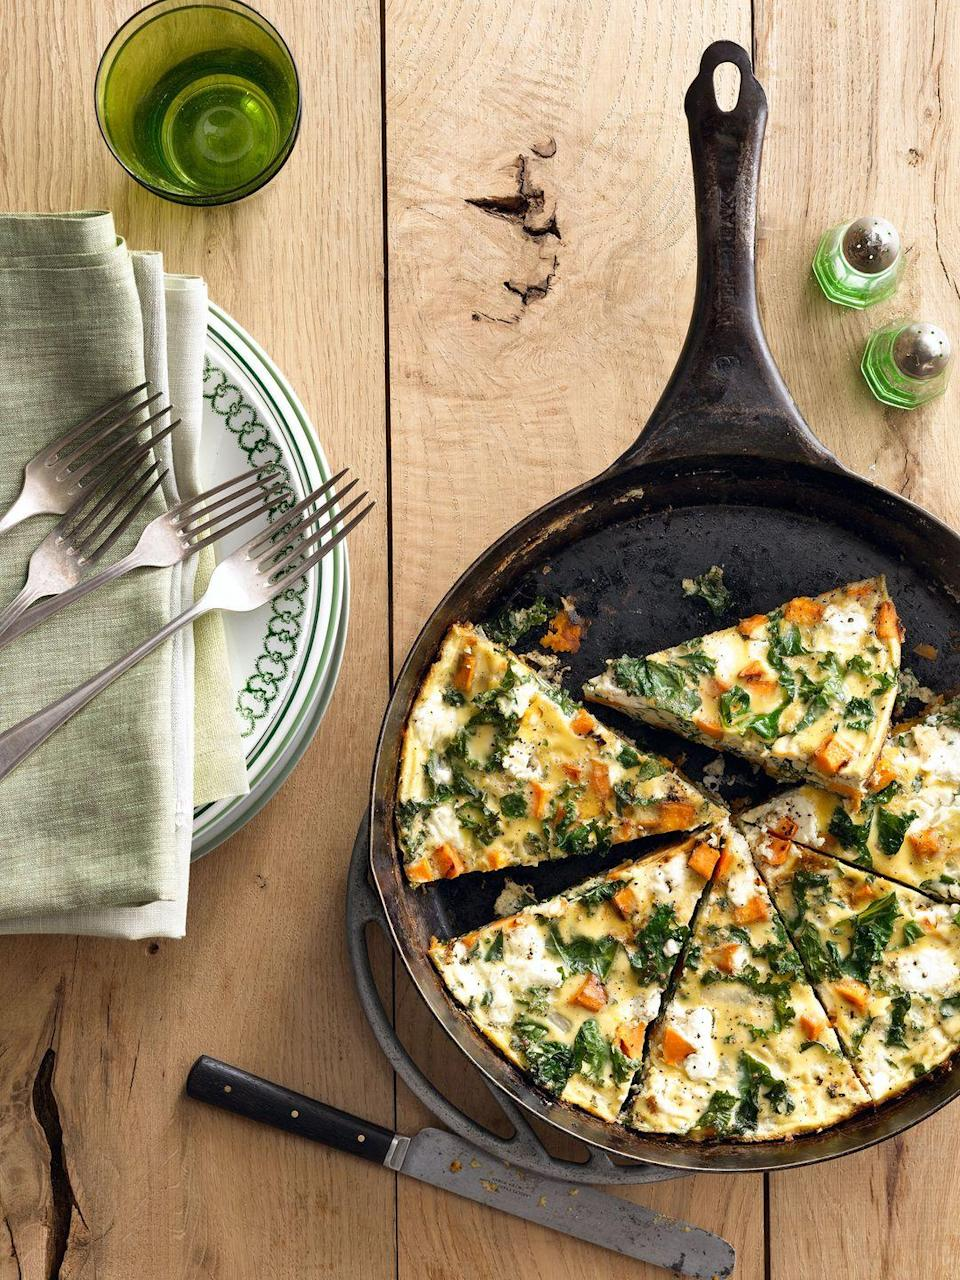 """<p>Serve breakfast for dinner one night this week. Sauté sweet potatoes and kale until tender, then add them to your egg mixture and sprinkle creamy goat cheese crumbles on top before baking. </p><p><em><a href=""""https://www.womansday.com/food-recipes/food-drinks/recipes/a39769/sweet-potato-kale-frittata-recipe-clx0914/"""" rel=""""nofollow noopener"""" target=""""_blank"""" data-ylk=""""slk:Get the Sweet Potato Kale Frittata recipe."""" class=""""link rapid-noclick-resp"""">Get the Sweet Potato Kale Frittata recipe.</a></em></p>"""